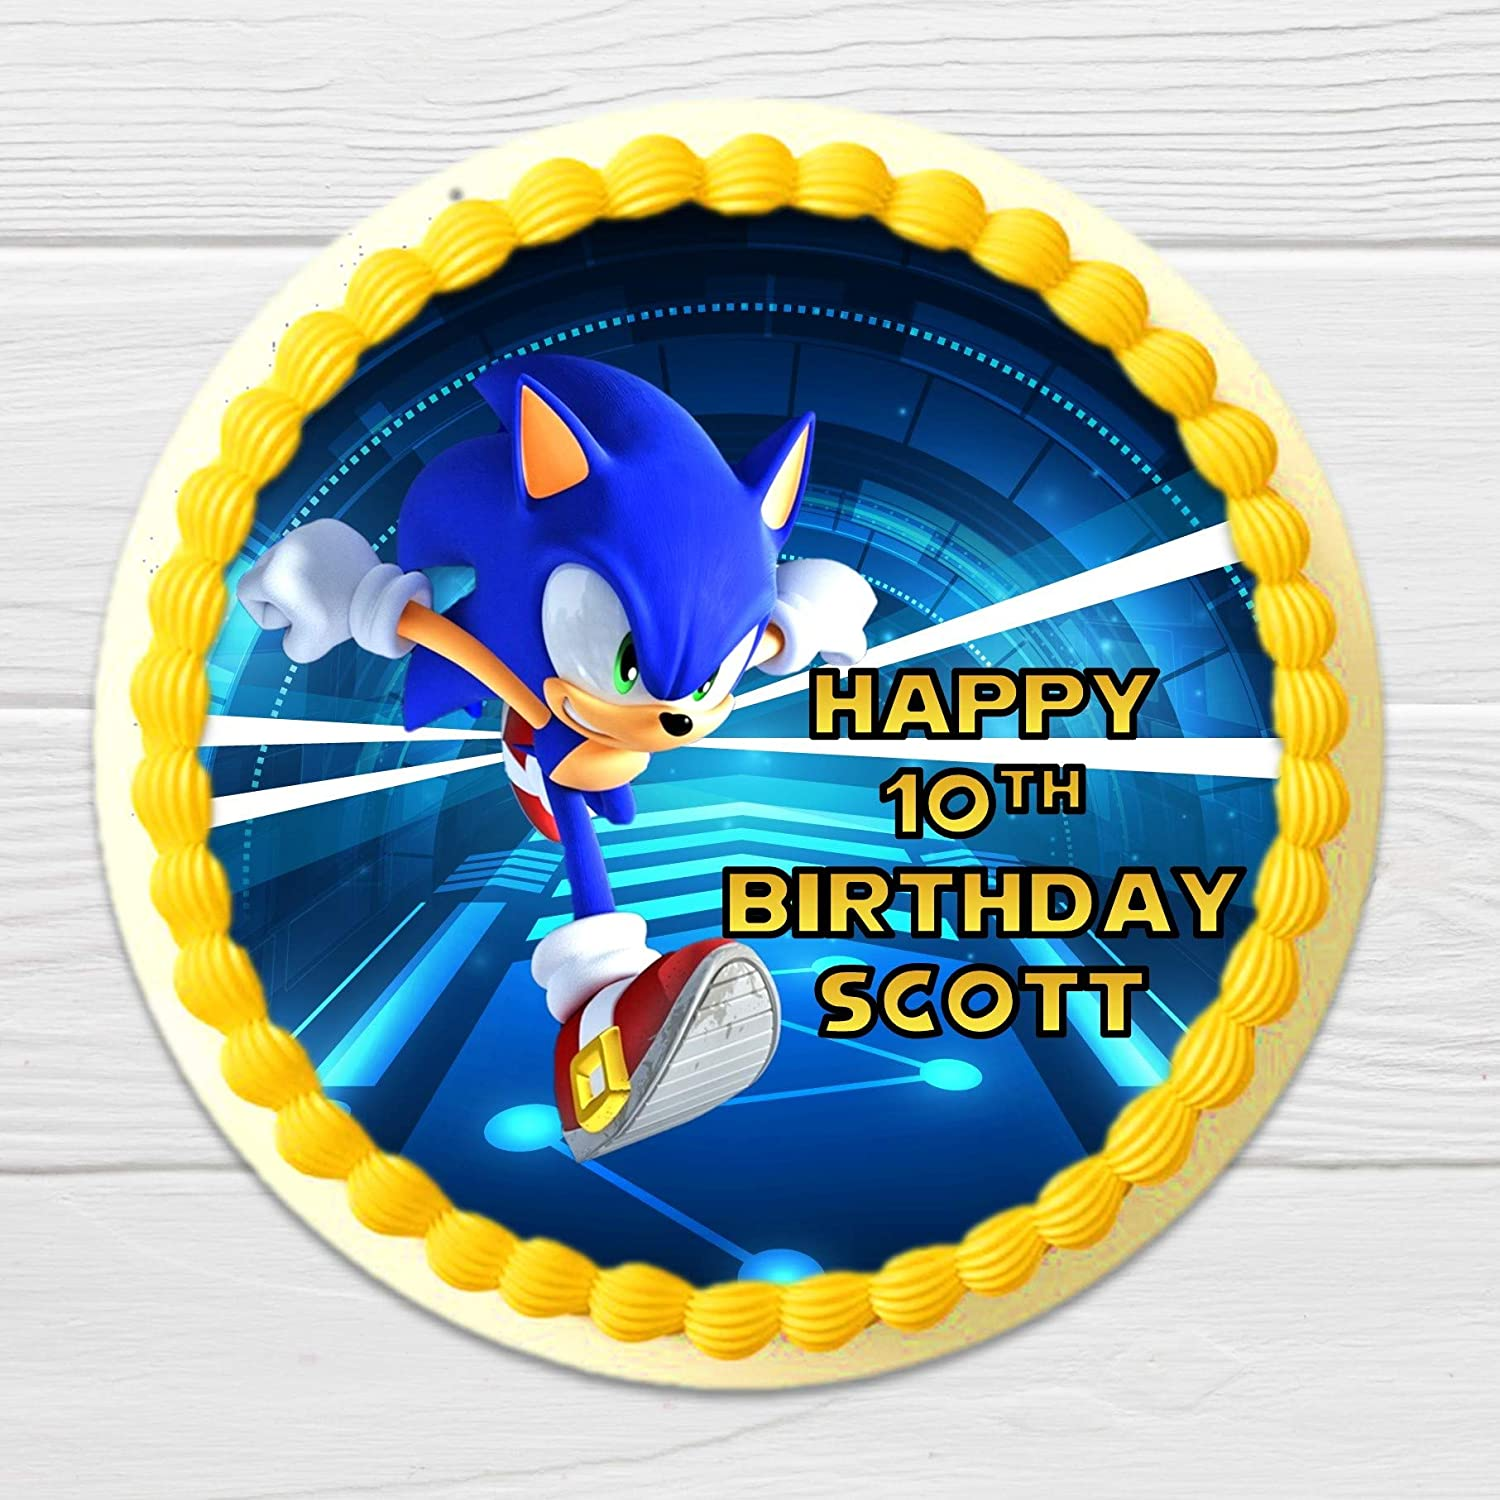 Personalized Cake Round or Rectangle Edible Image Frosting Paper Edible Sonic Birthday Cake Topper